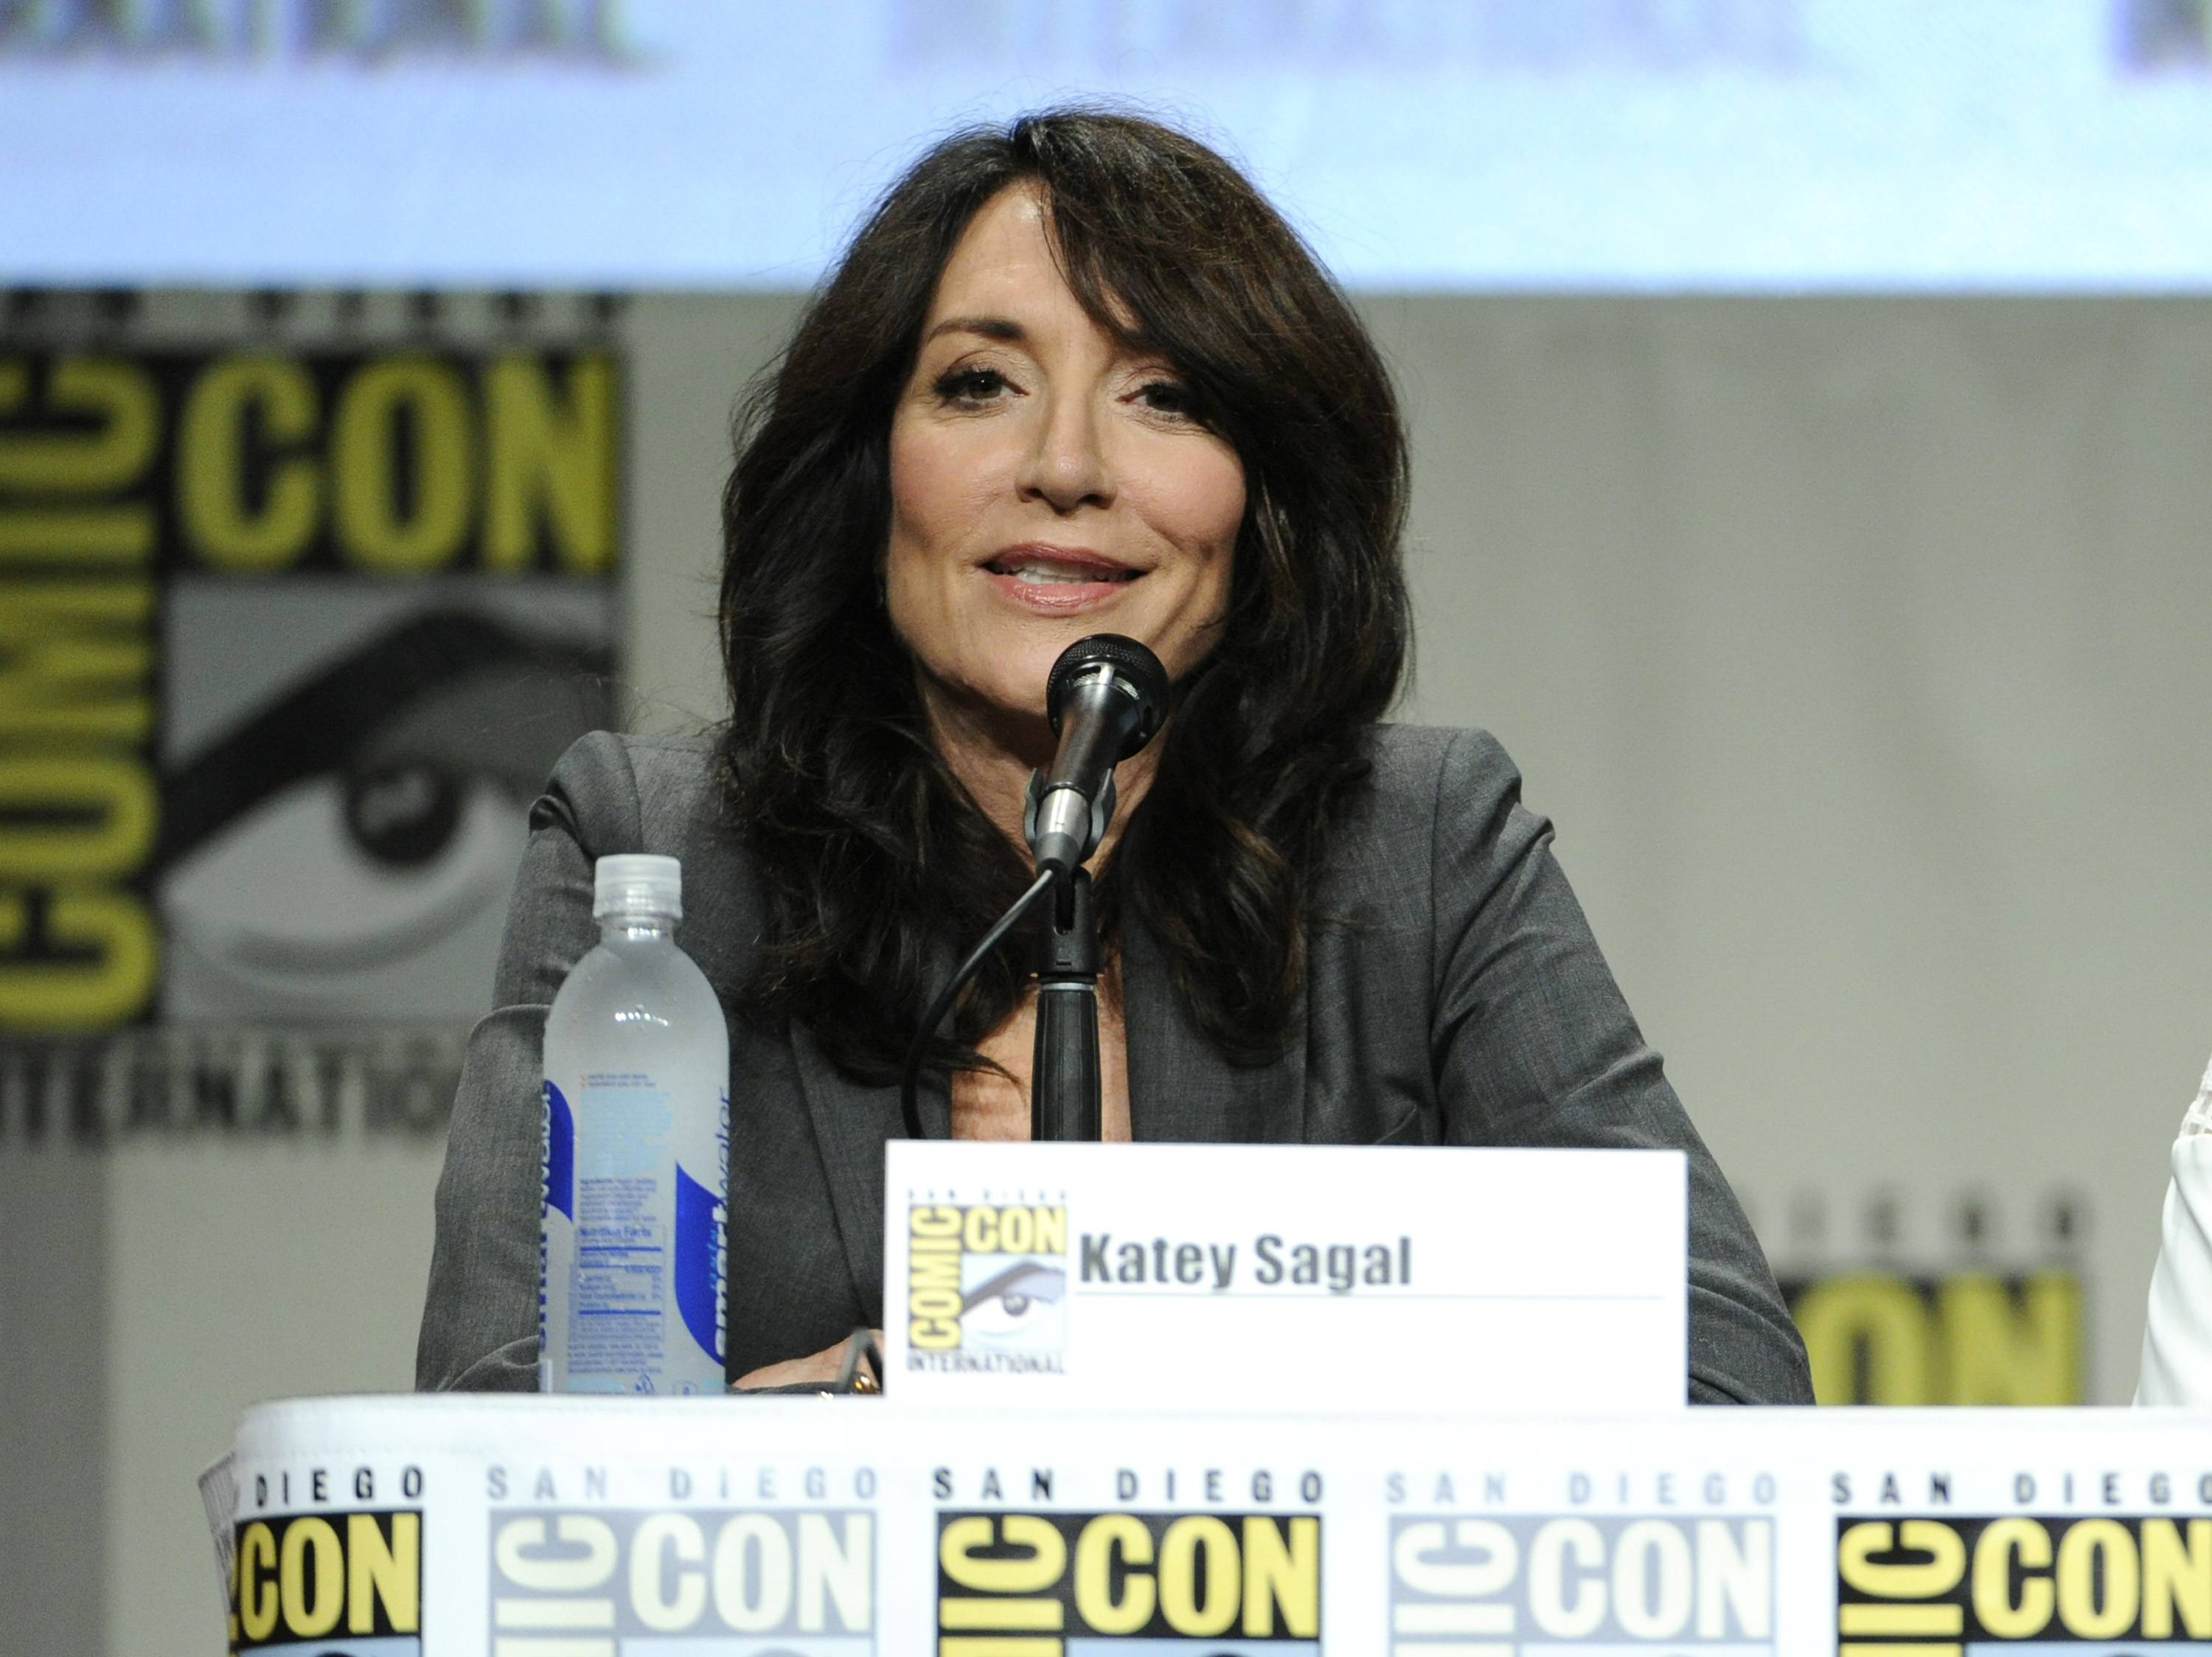 Katey Sagal attends an Entertainment Weekly panel on Day 3 of Comic-Con International on Saturday.